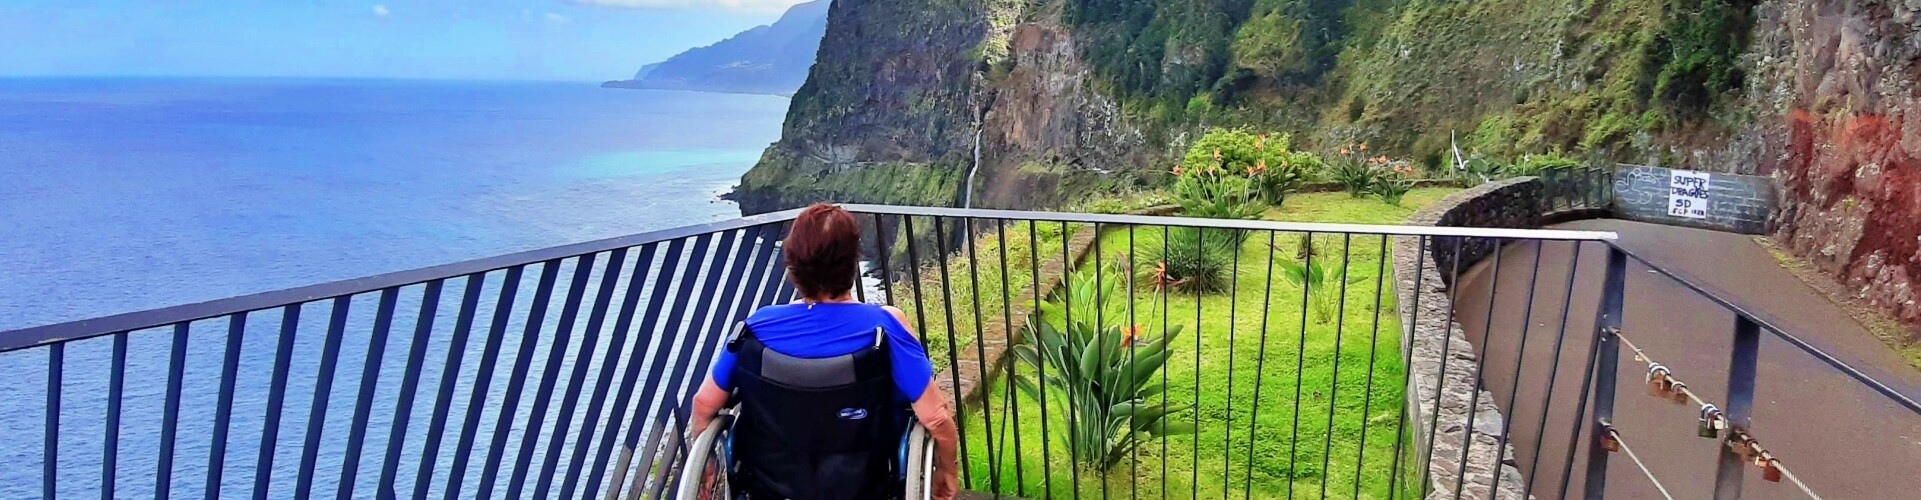 Accessibility in Madeira Island